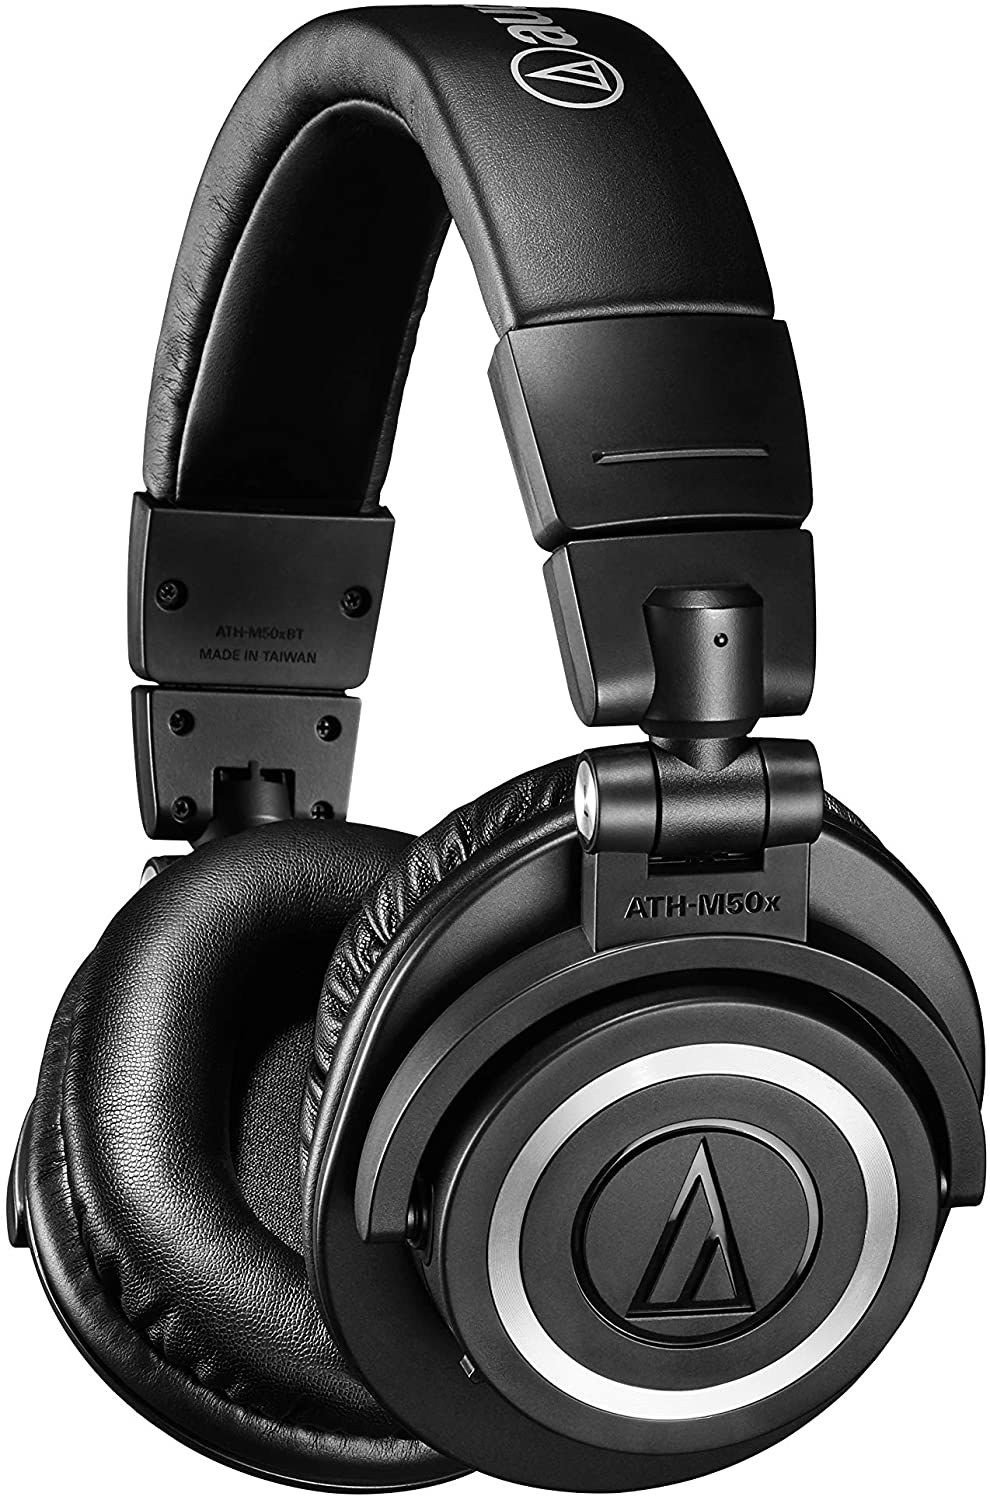 Audio-Technica ATH-M50xBT - Best headphone for beat making